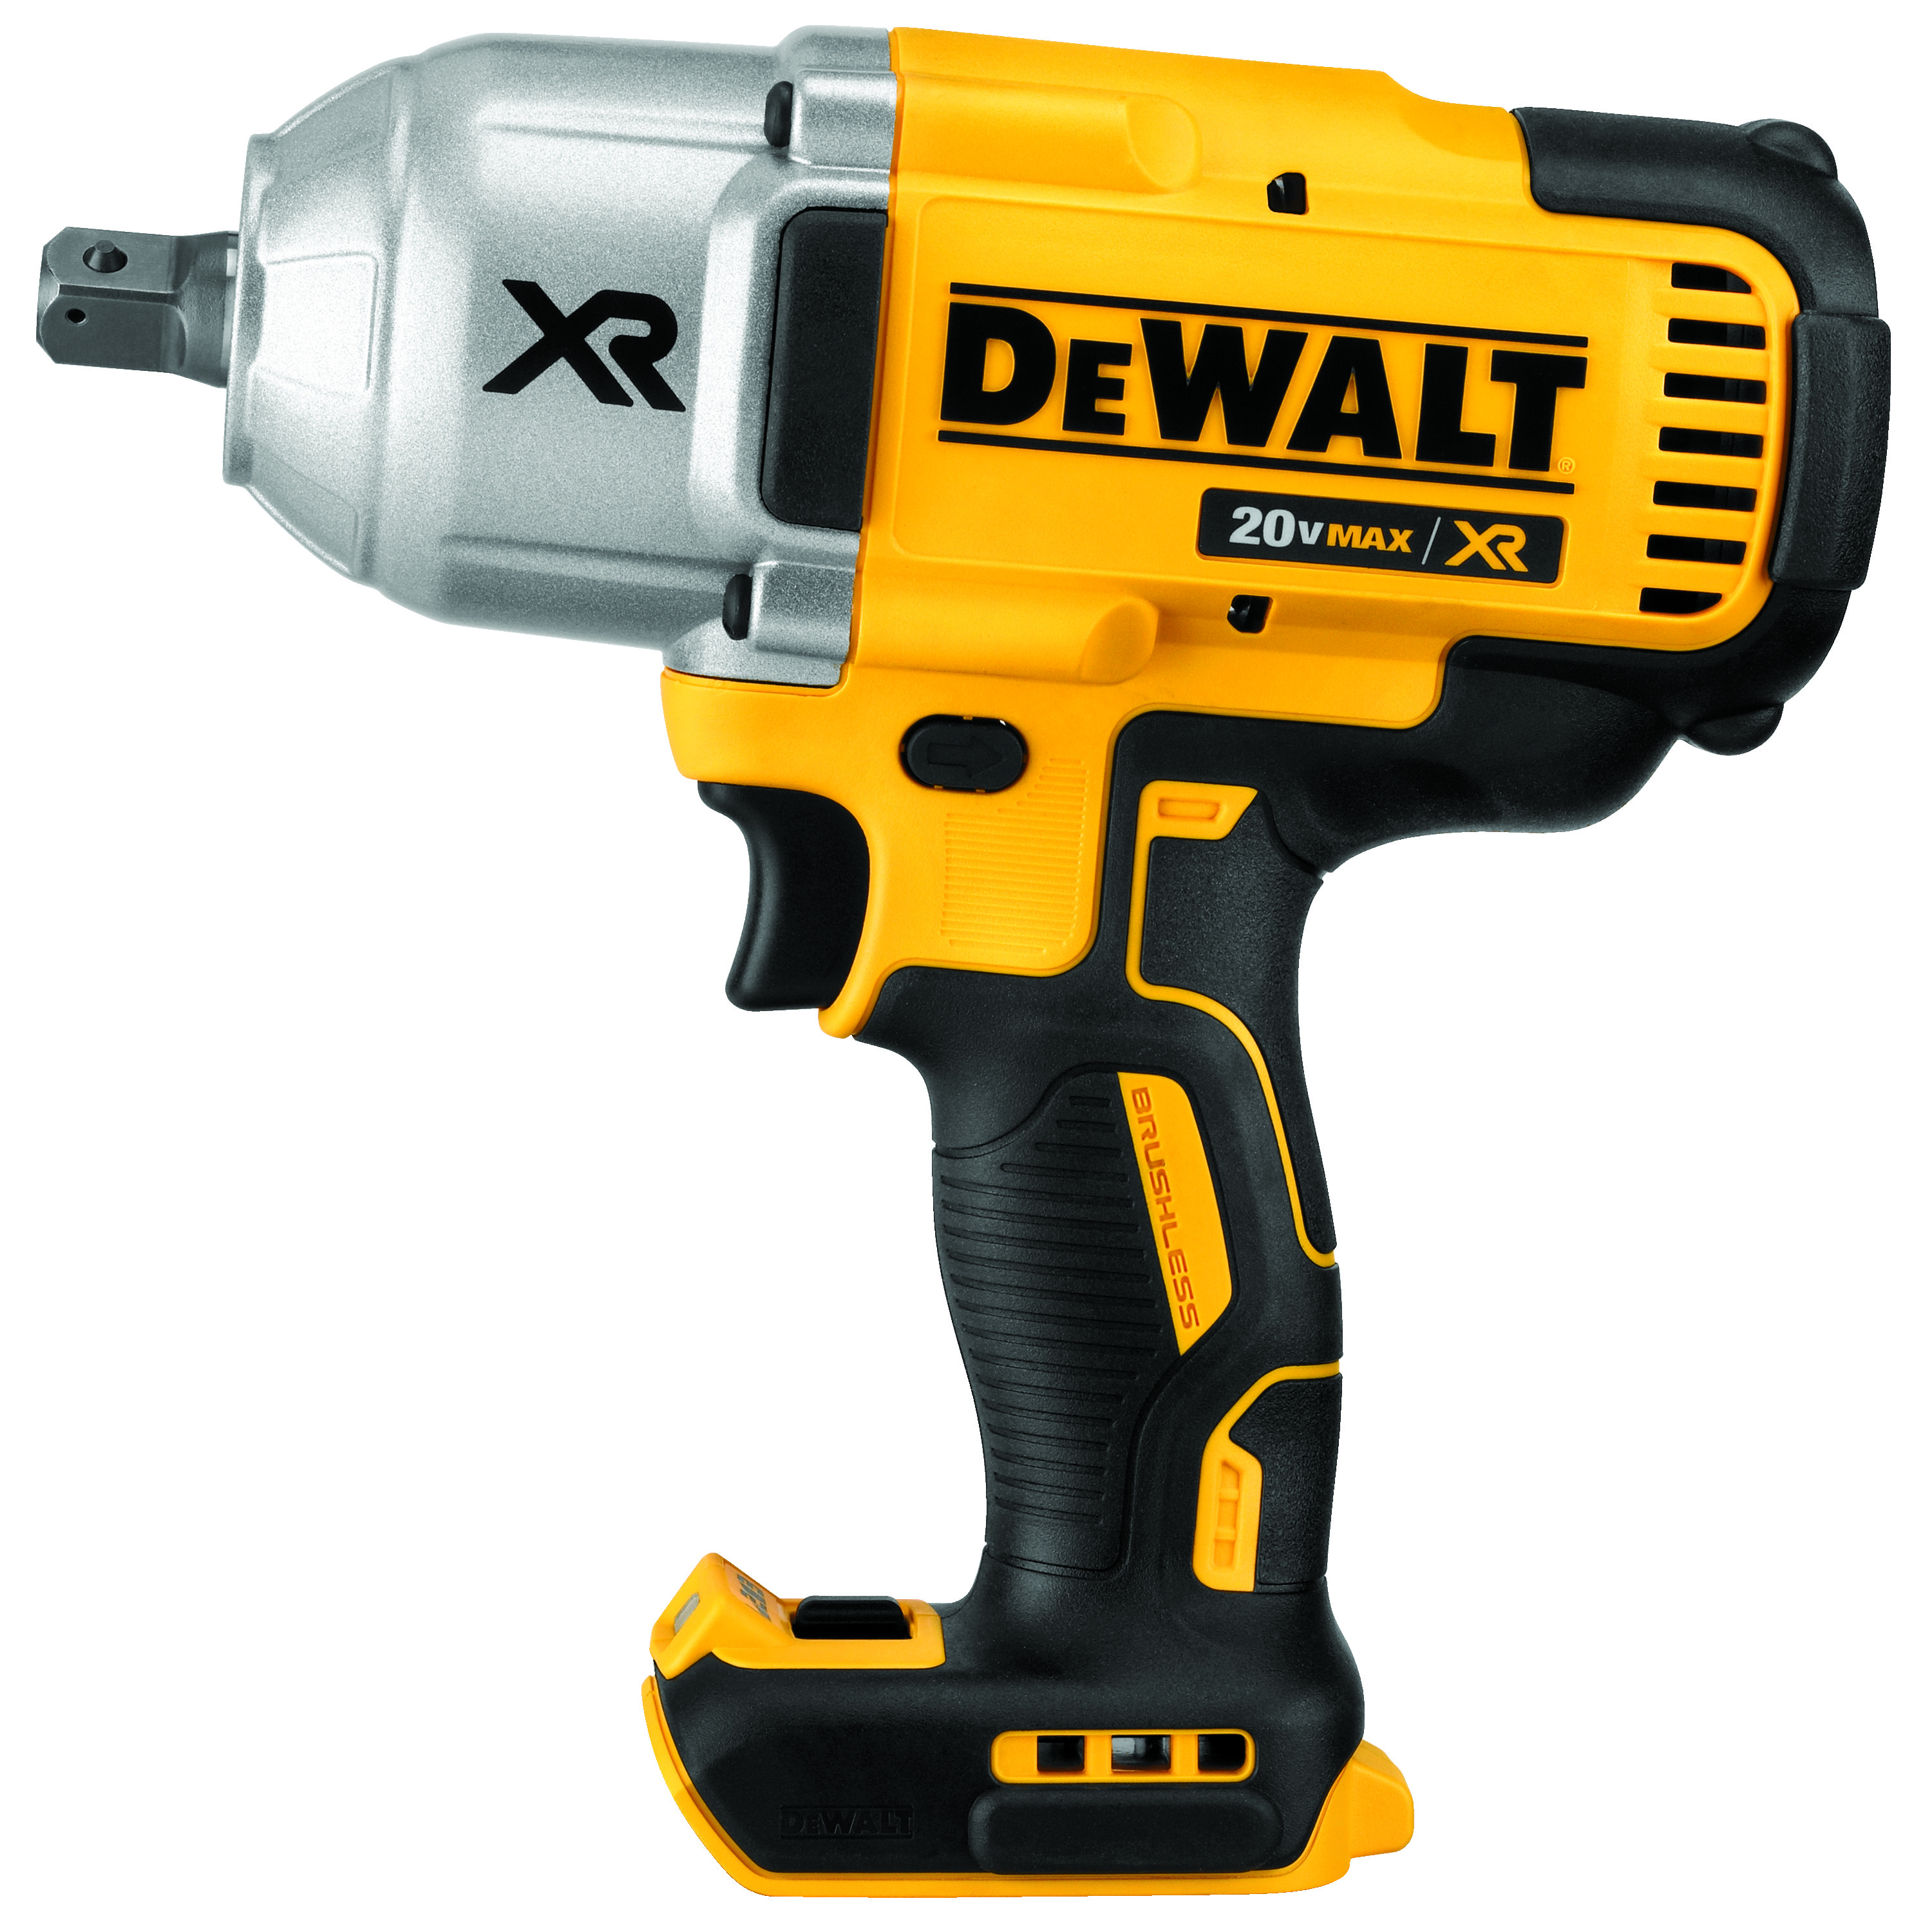 DeWALT® 20V MAX* MATRIX™ DCF899B Compact Cordless Impact Wrench, 1/2 in Straight Drive, 700 ft-lb Torque, 20 VDC, 8-13/16 in OAL